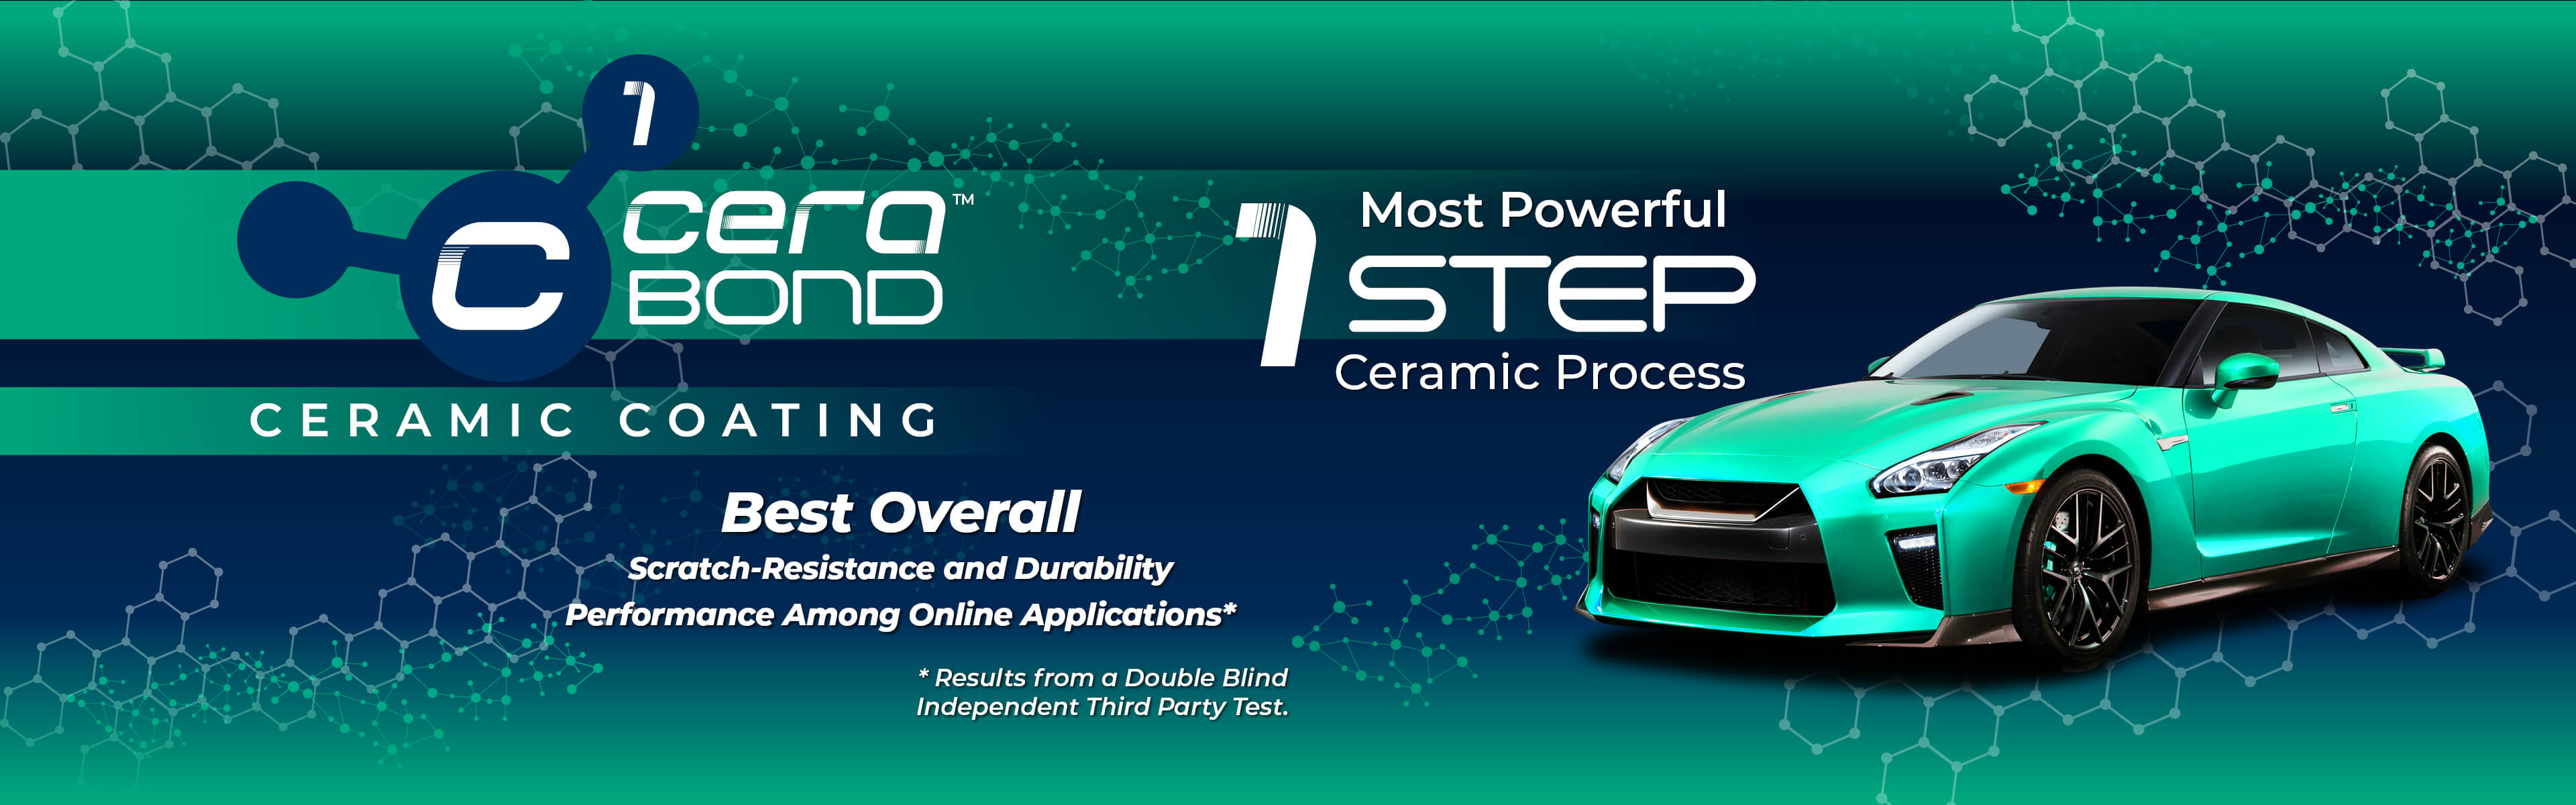 Cerabond - Ceramic Coating. Most Powerful 1 Step Ceramic Process.